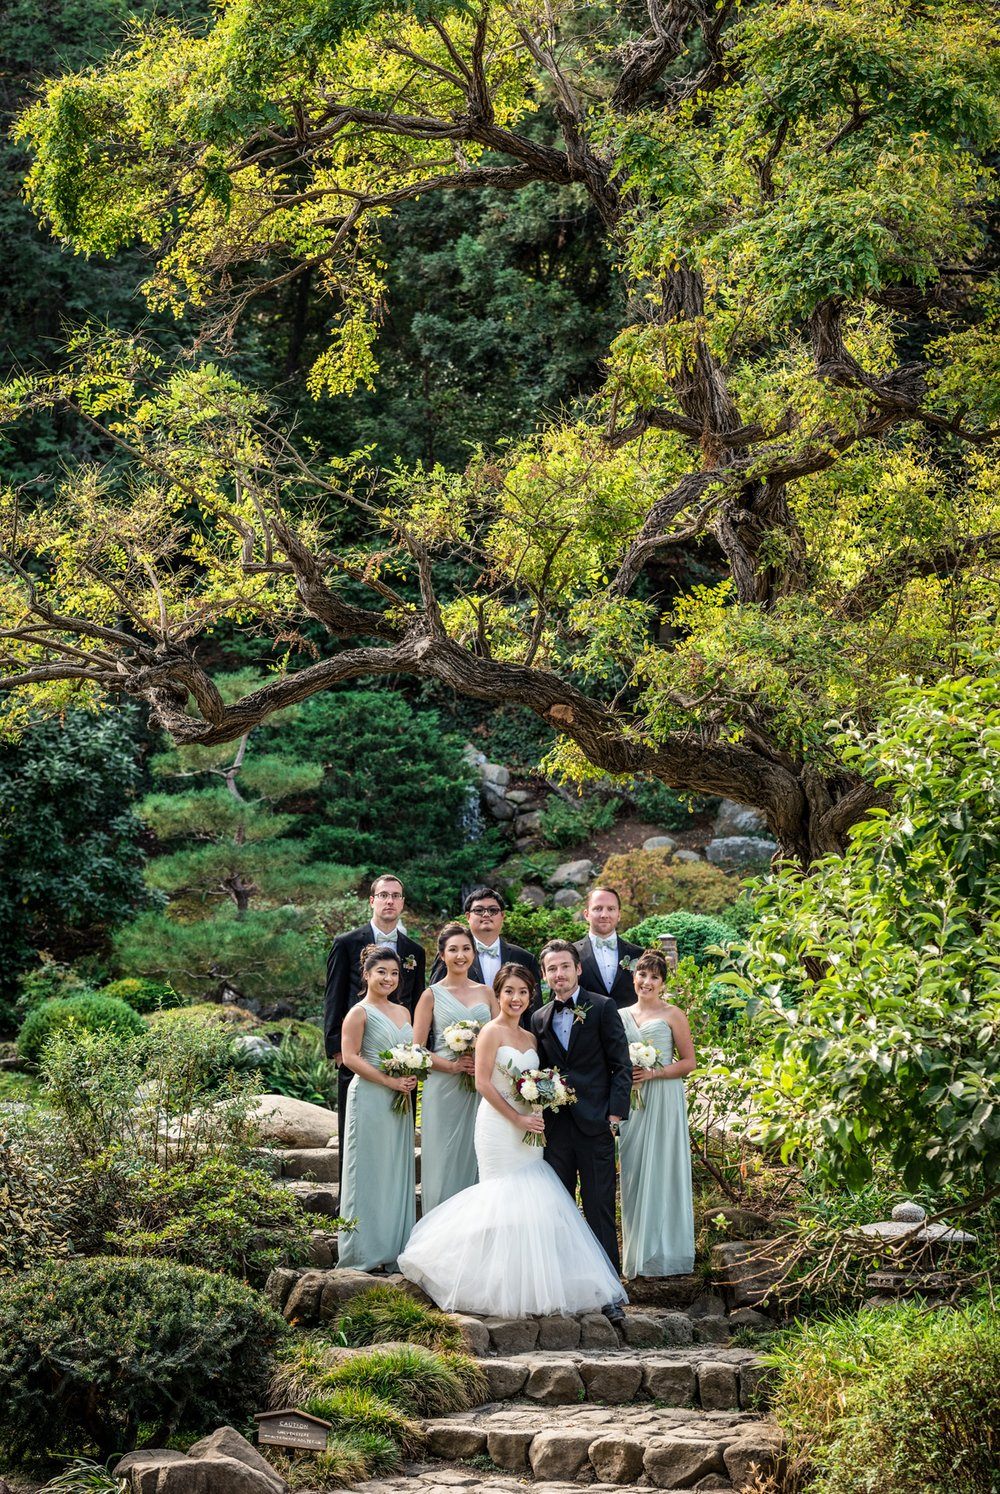 Lancy-Adam-Bridal-Party-Wedding-Hakone-Saratoga-Satvedi-Photography